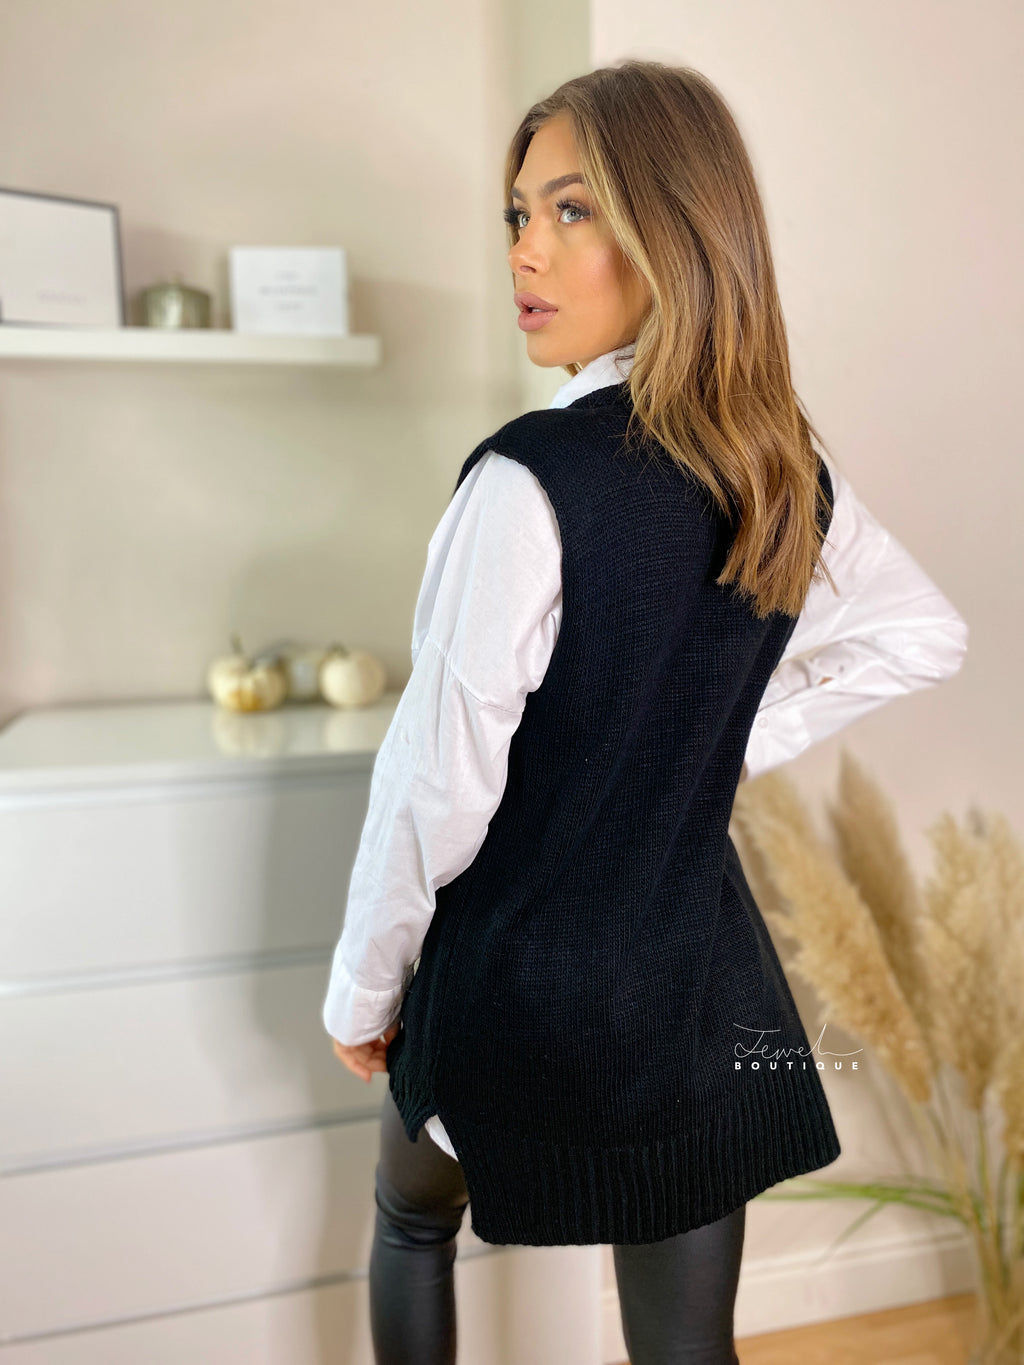 Women's black sleeveless knitted black vest